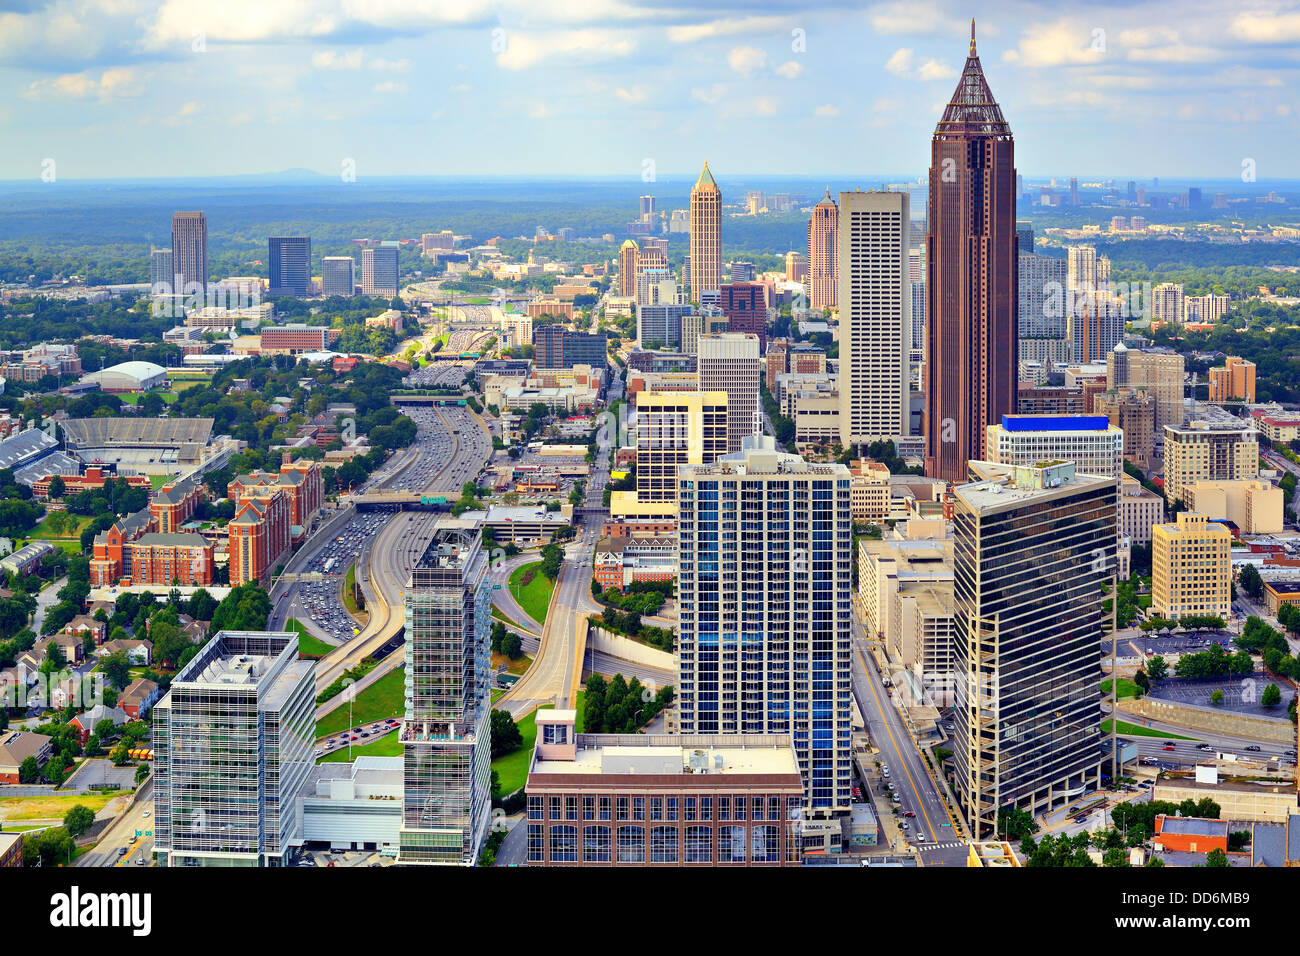 Downtown Atlanta, Georgia, USA skyline. - Stock Image